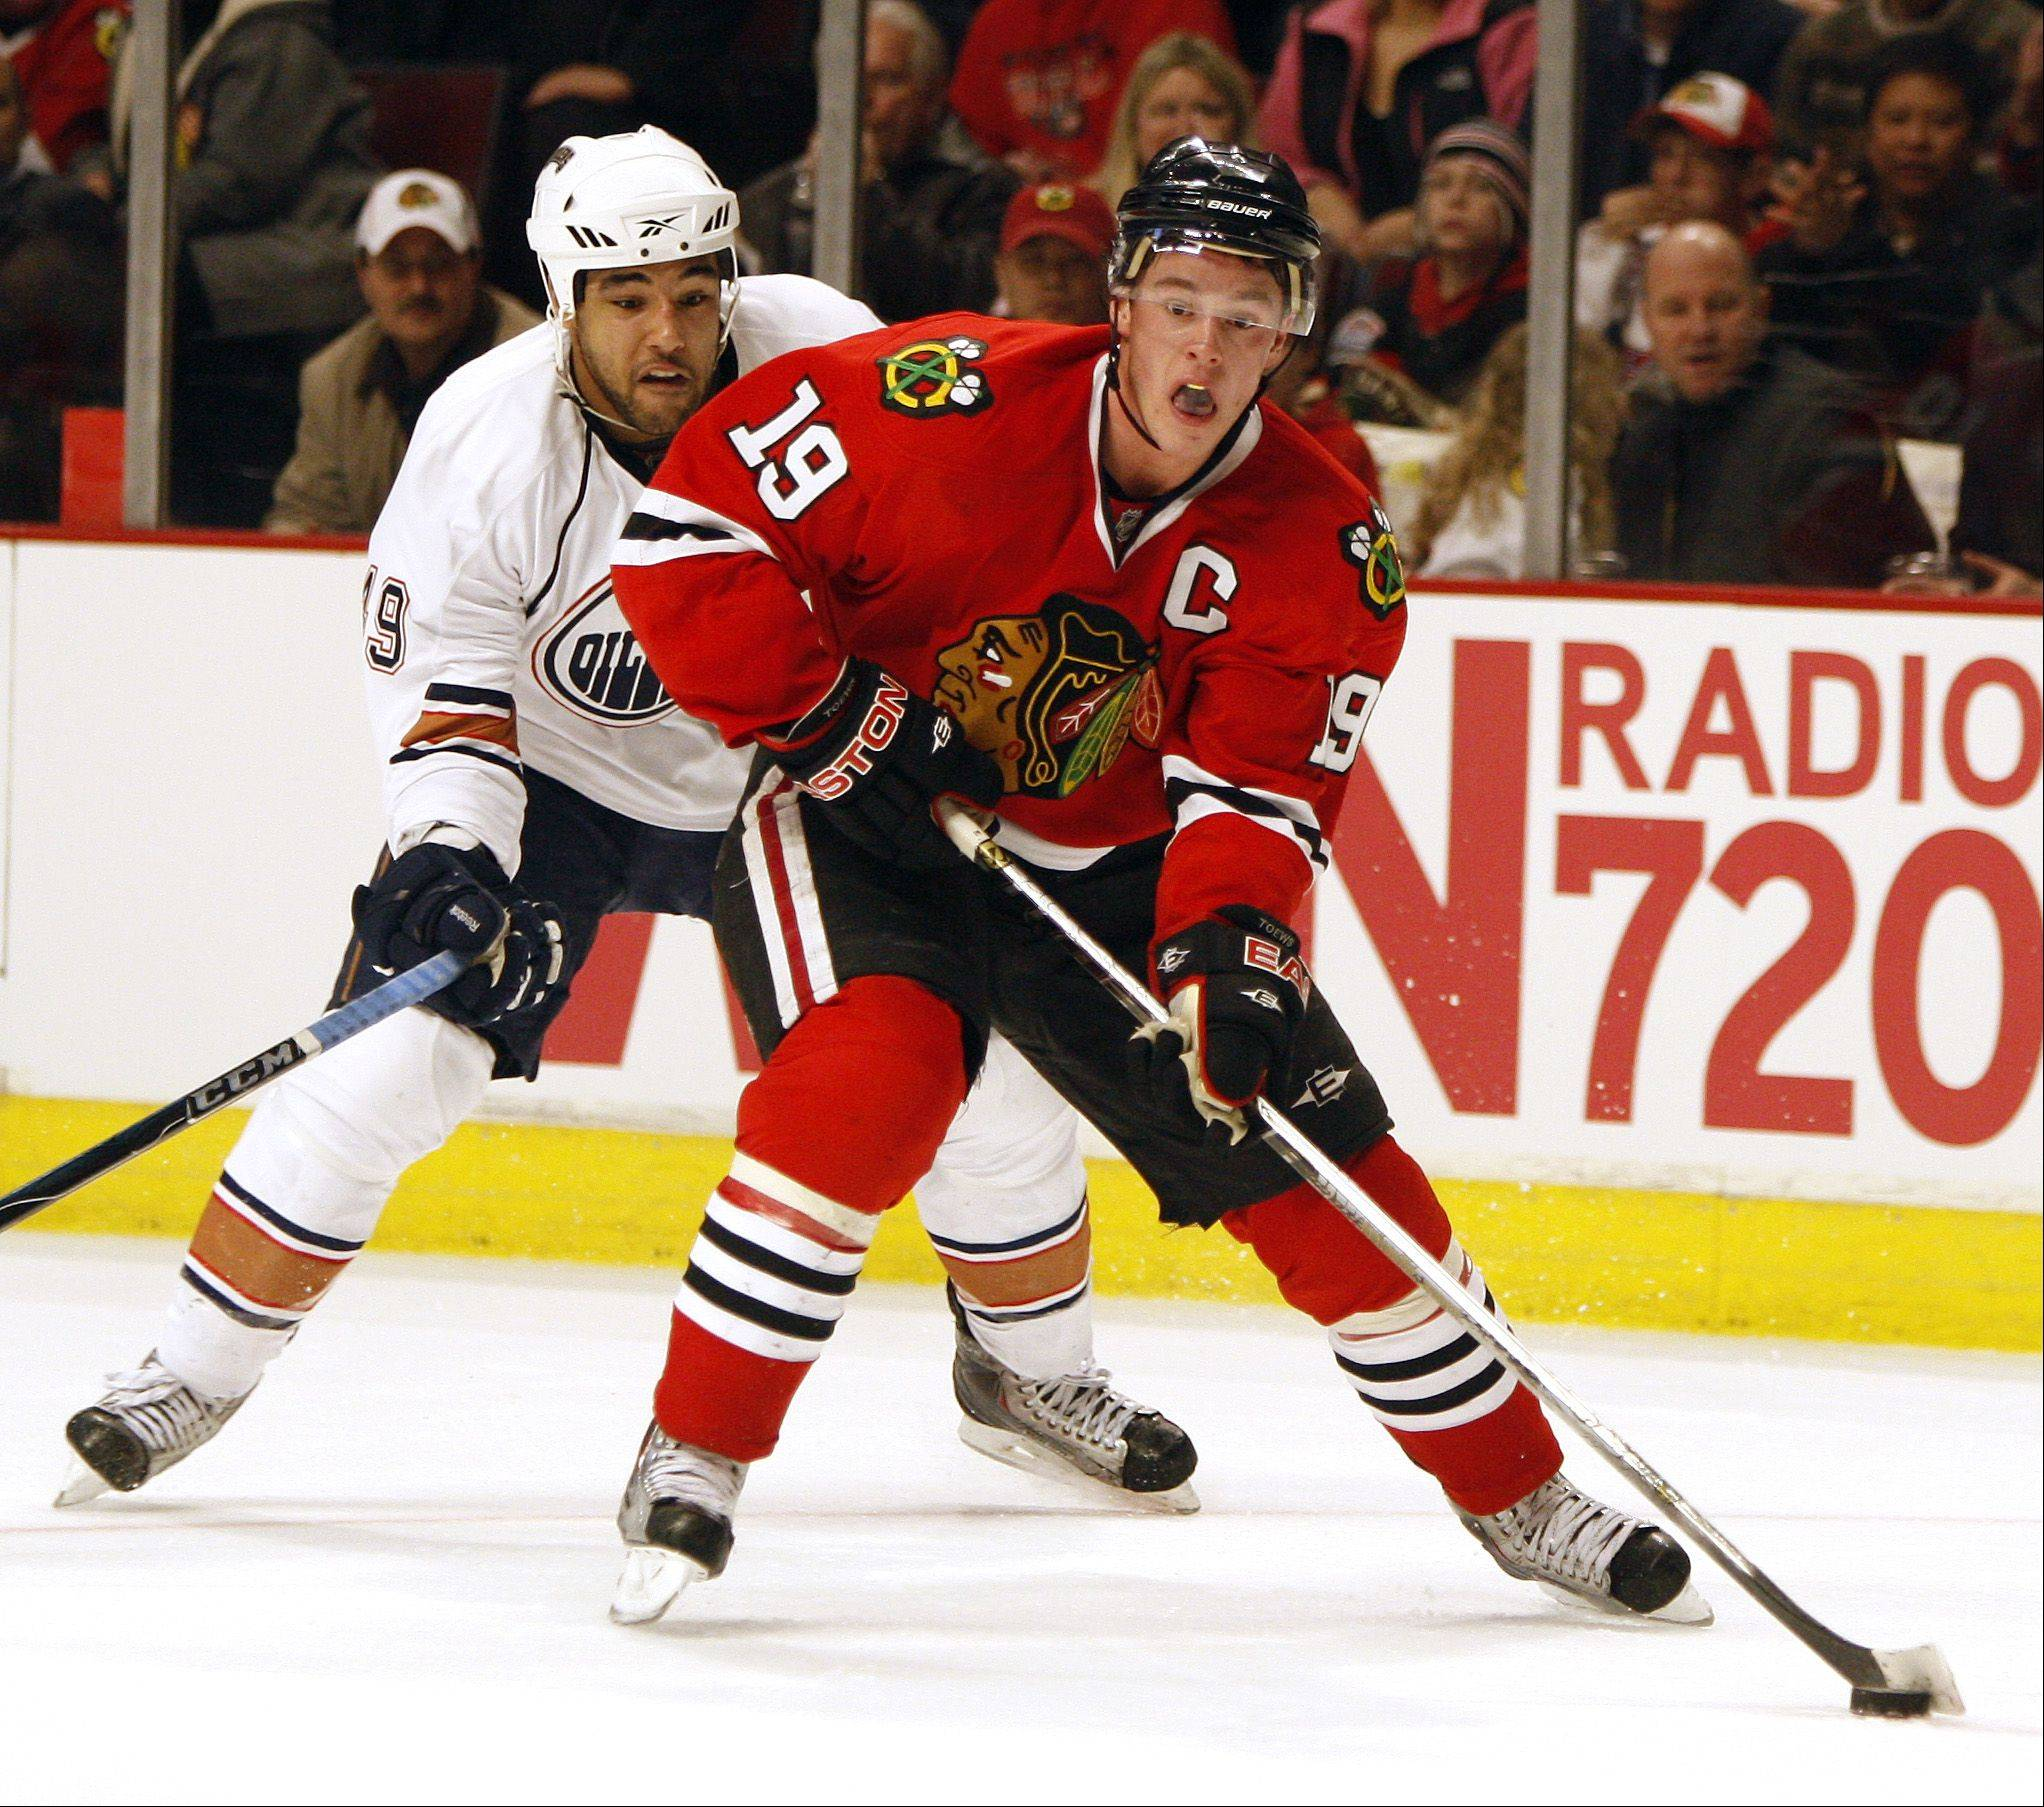 "Blackhawks captain Jonathan Toews was a vocal critic of the NHL during the lengthy lockout. On Sunday, Toews said, ""All that is behind us now. I would rather talk about hockey and the great things that are going to happen this season."""